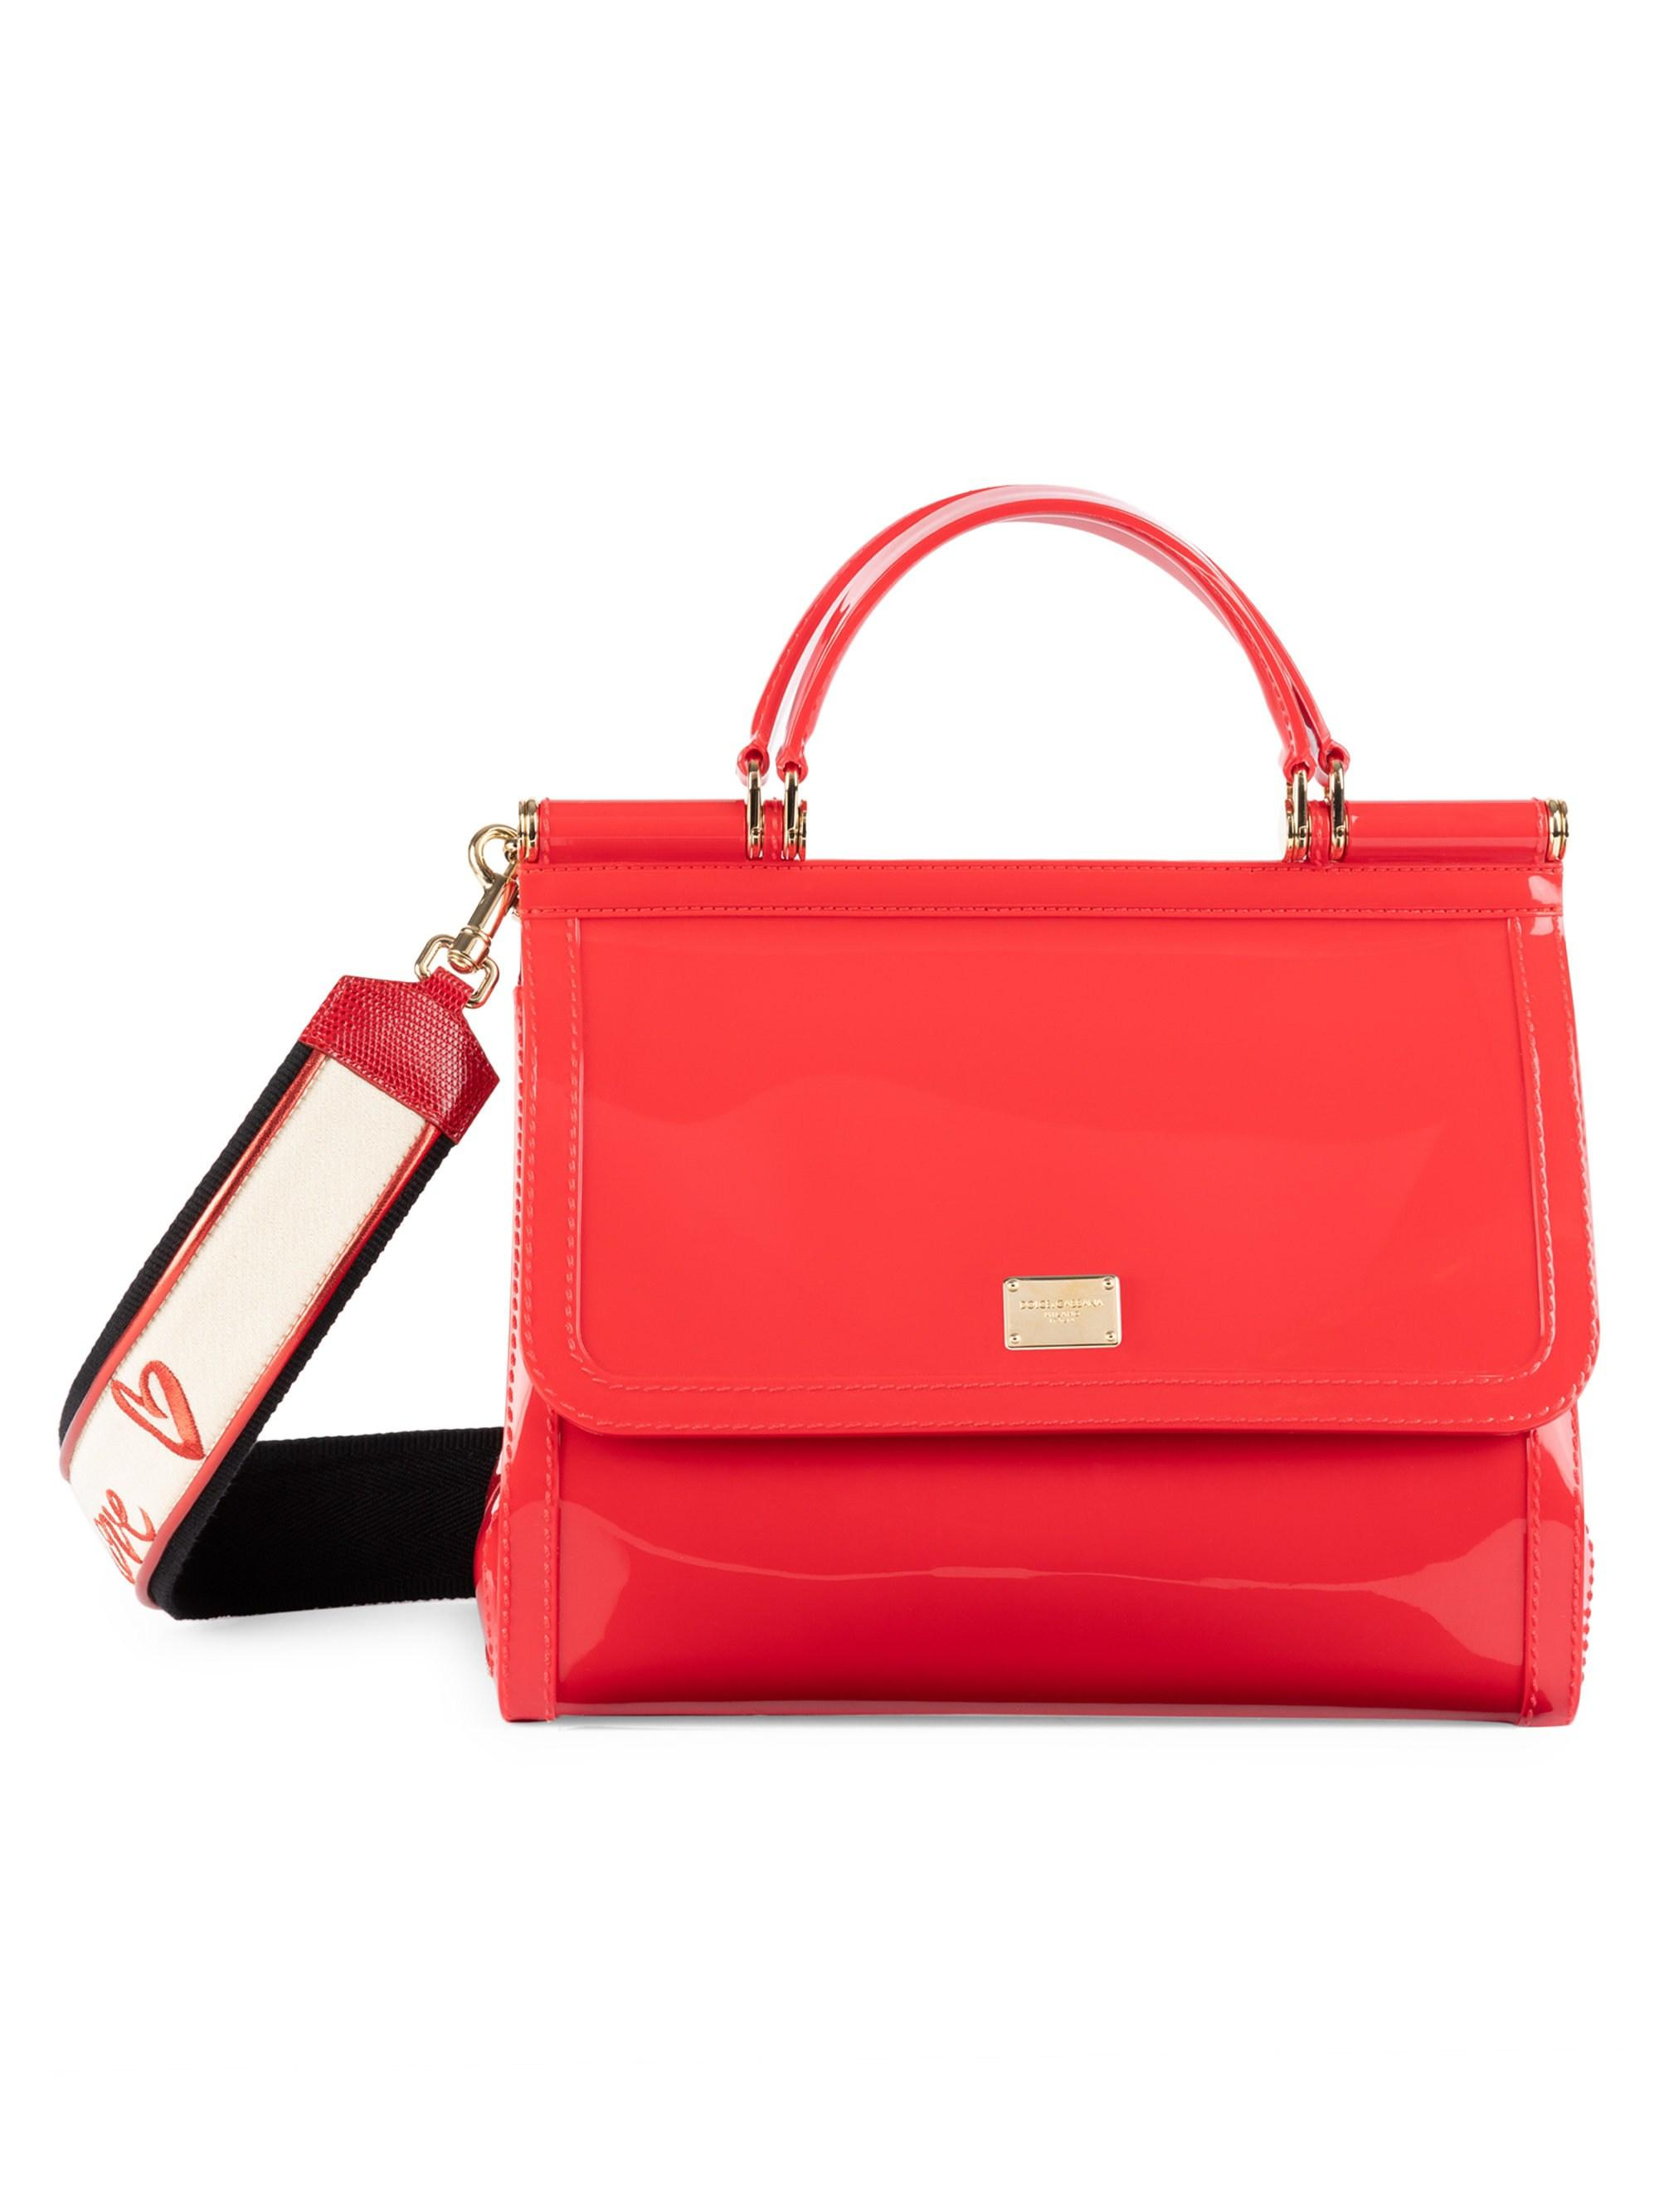 2c7c3810ef Lyst - Dolce   Gabbana Sicily Pvc Top Handle Bag in Red